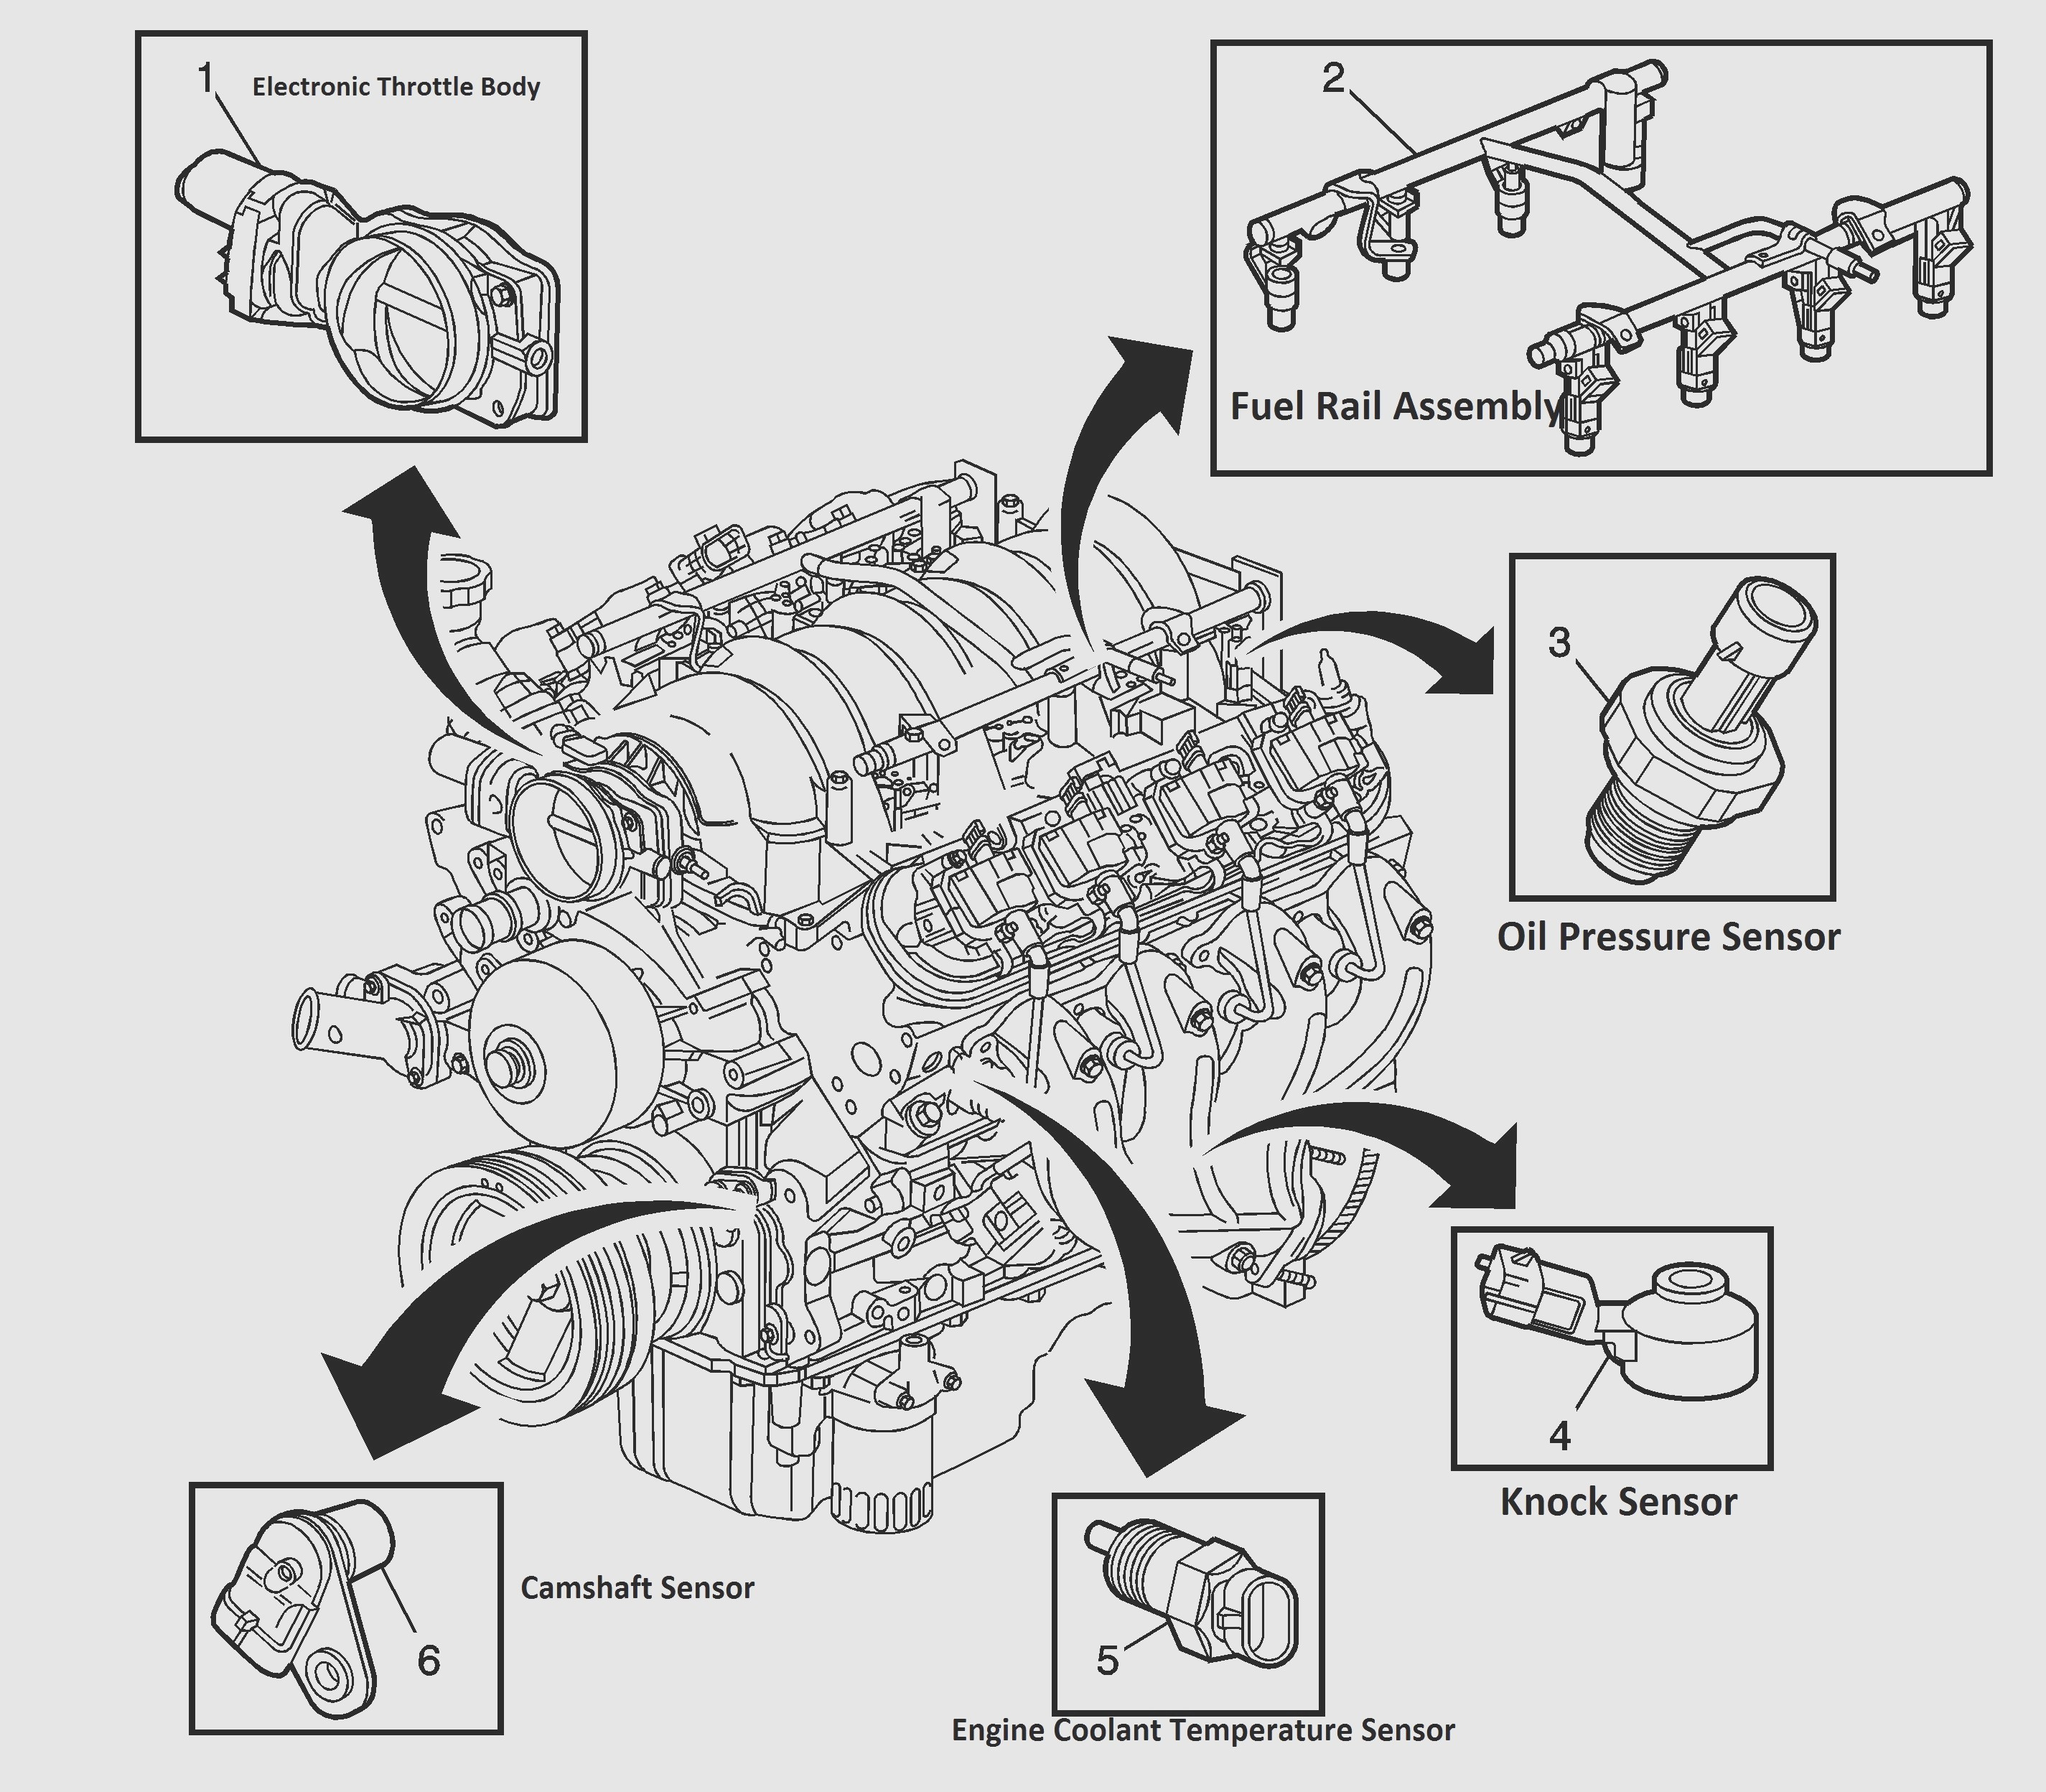 2007 Buick Lucerne Engine Diagram Great Description About Buick Lacrosse 2009 with Fascinating Of 2007 Buick Lucerne Engine Diagram